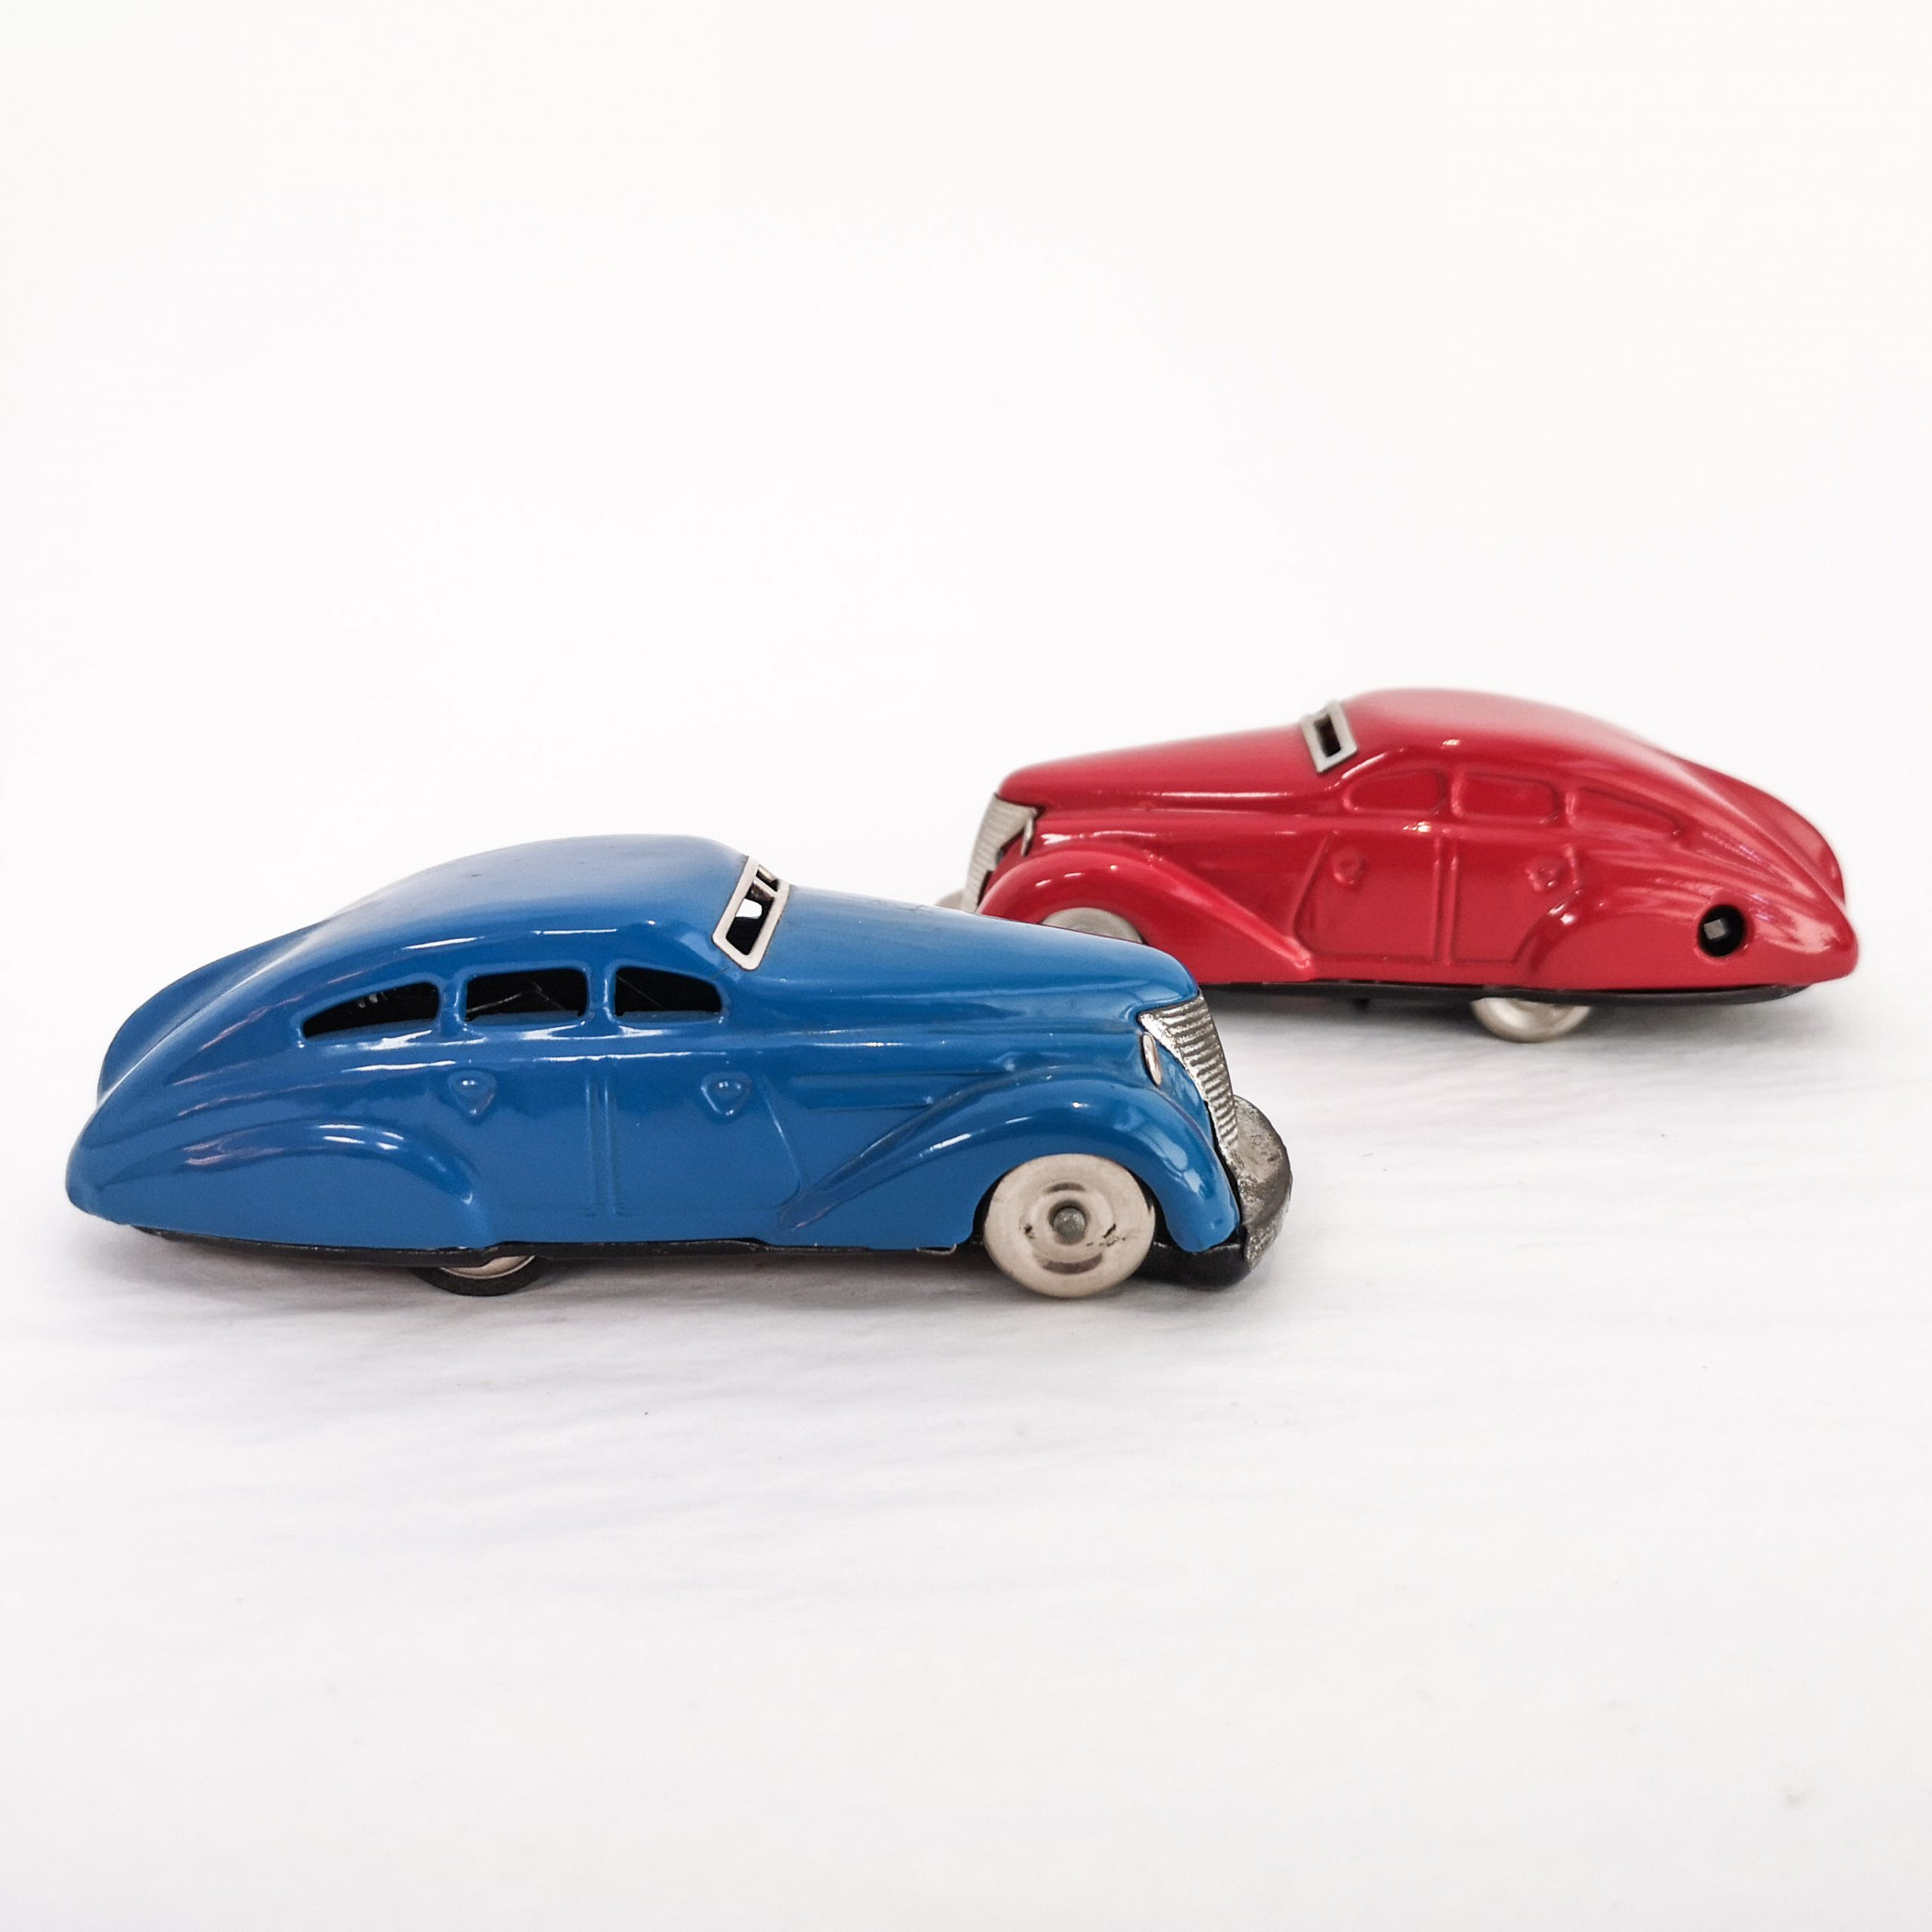 Blue and red Schuco Limousine tinplate clockwork cars with patented turn-back mechanism. 2